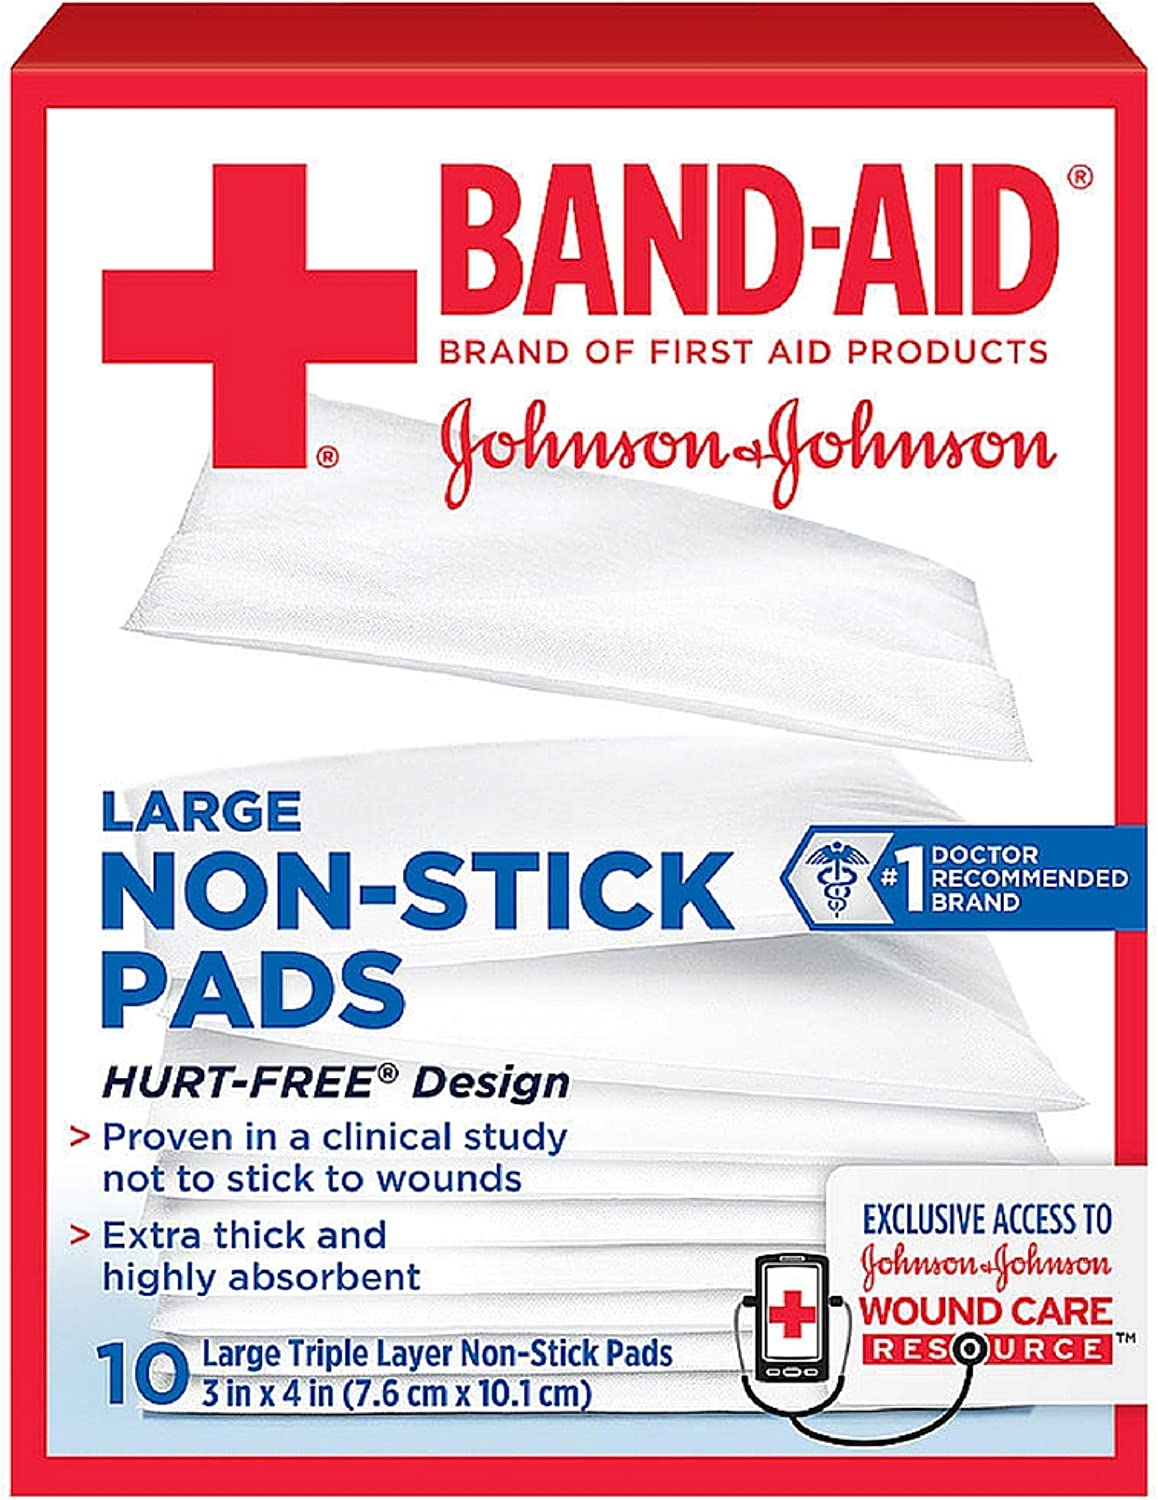 BAND-AID First Aid Non-Stick Pads, Large, 3 in x 4 in, 10 ea (Pack of 7) 81rlkt6LNLL